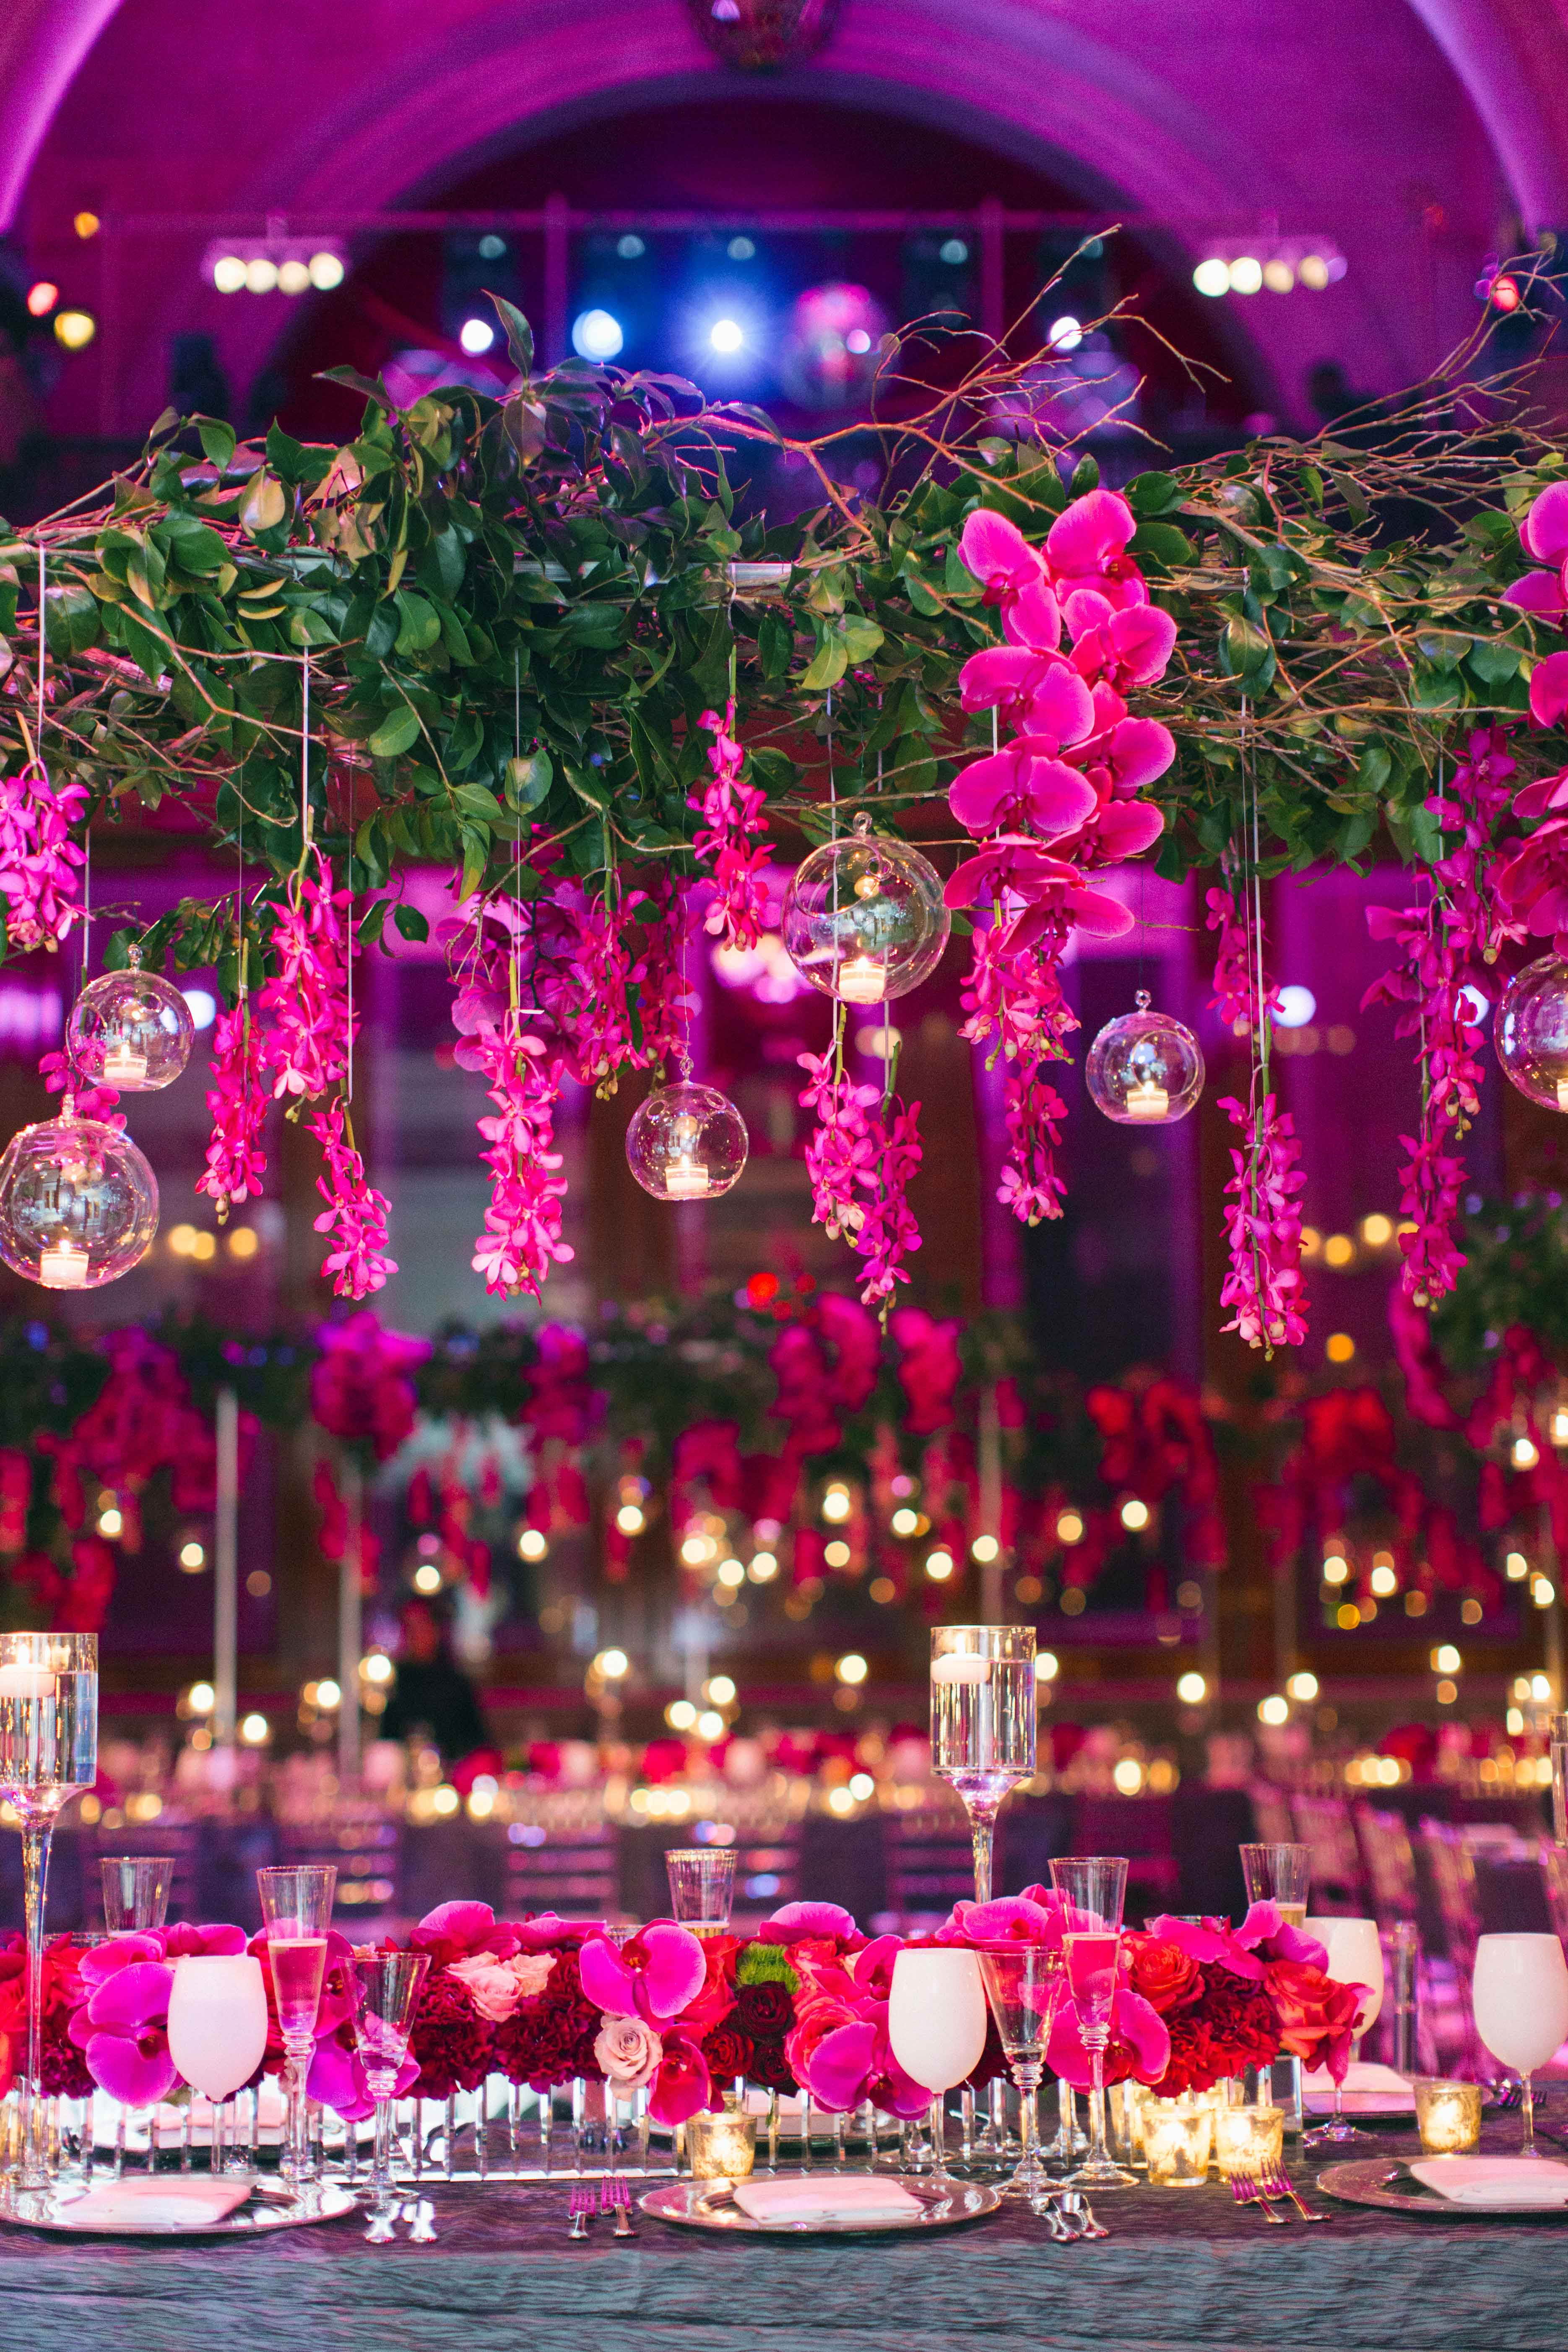 Overhead wedding centerpiece fuchsia orchids, greenery, and glass globes with candles